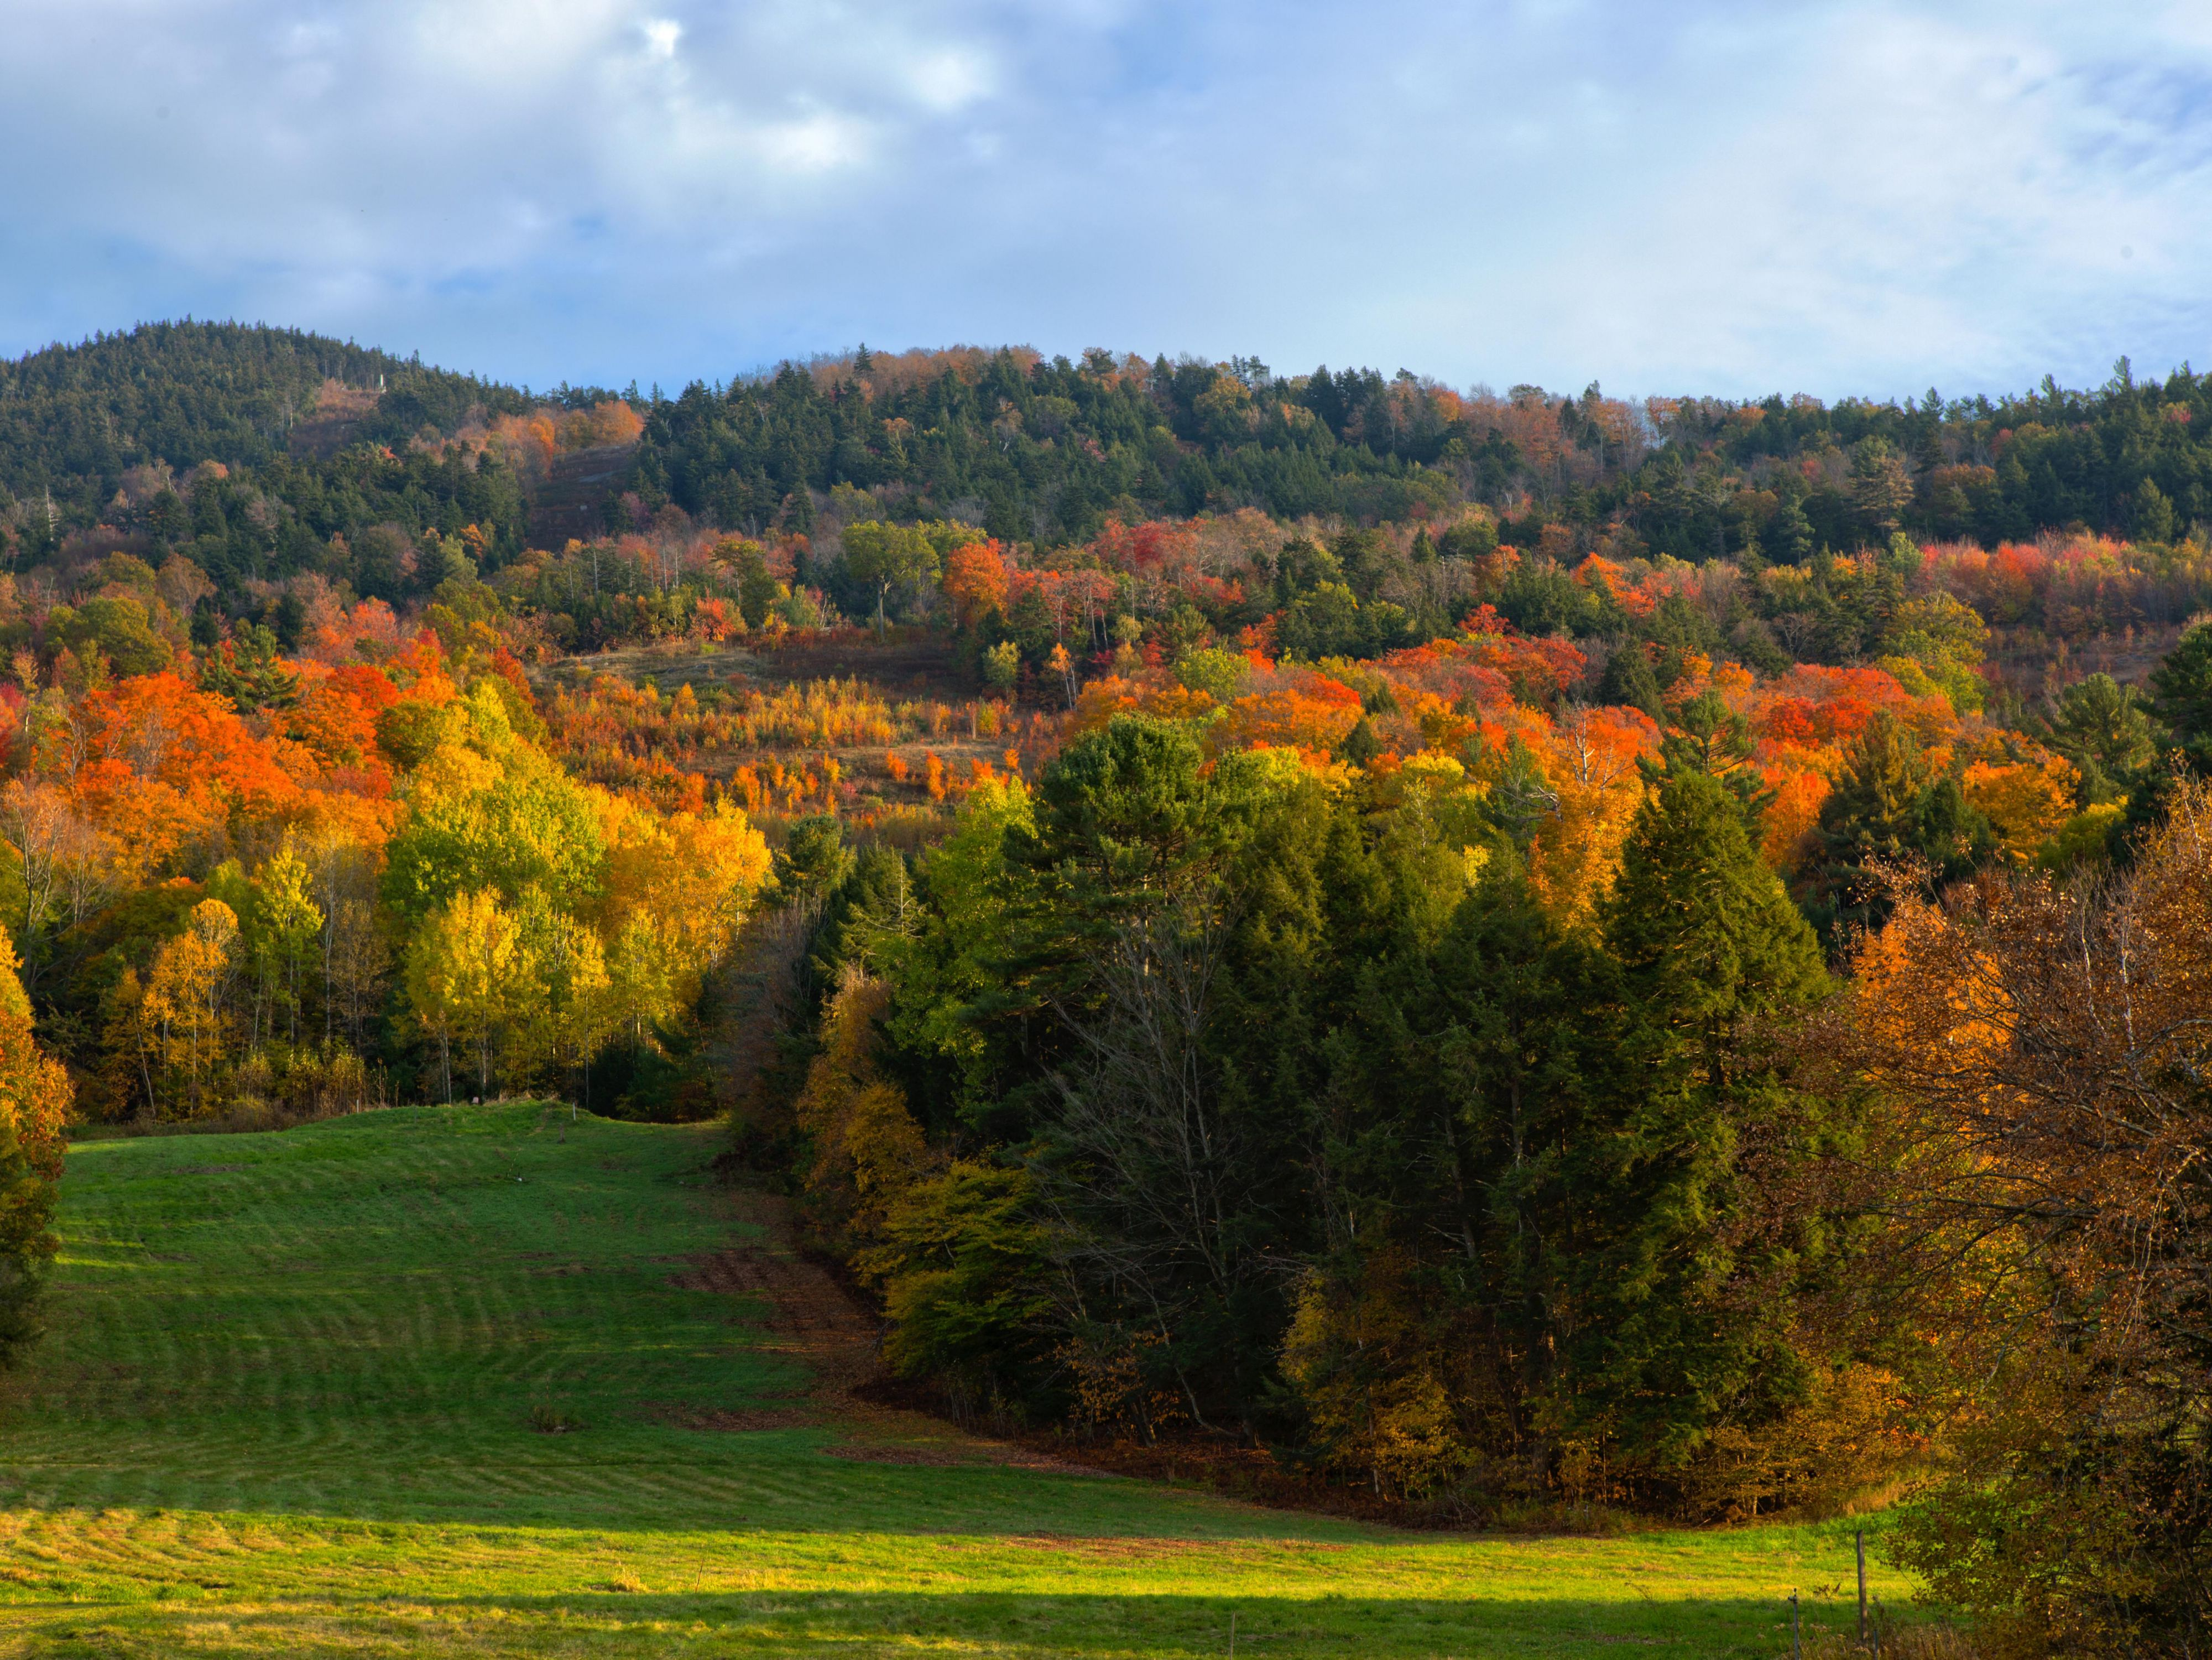 Autumn brings fall foliage